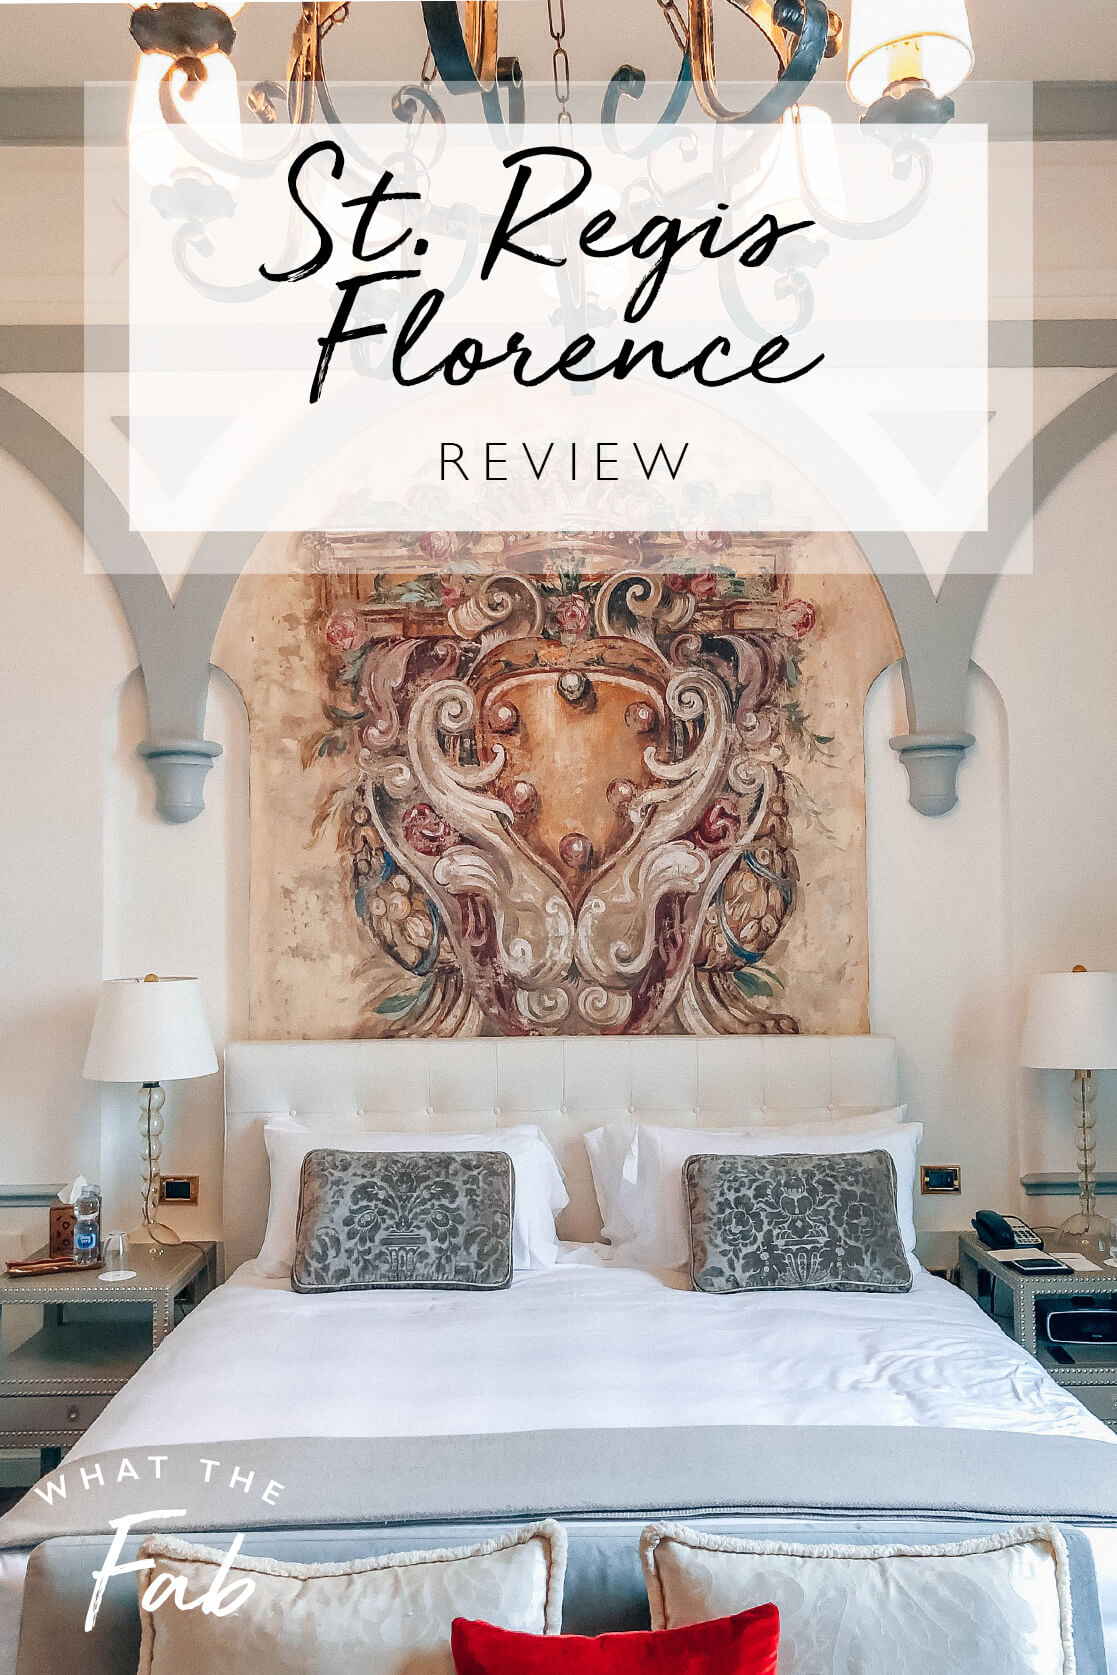 St Regis Florence review